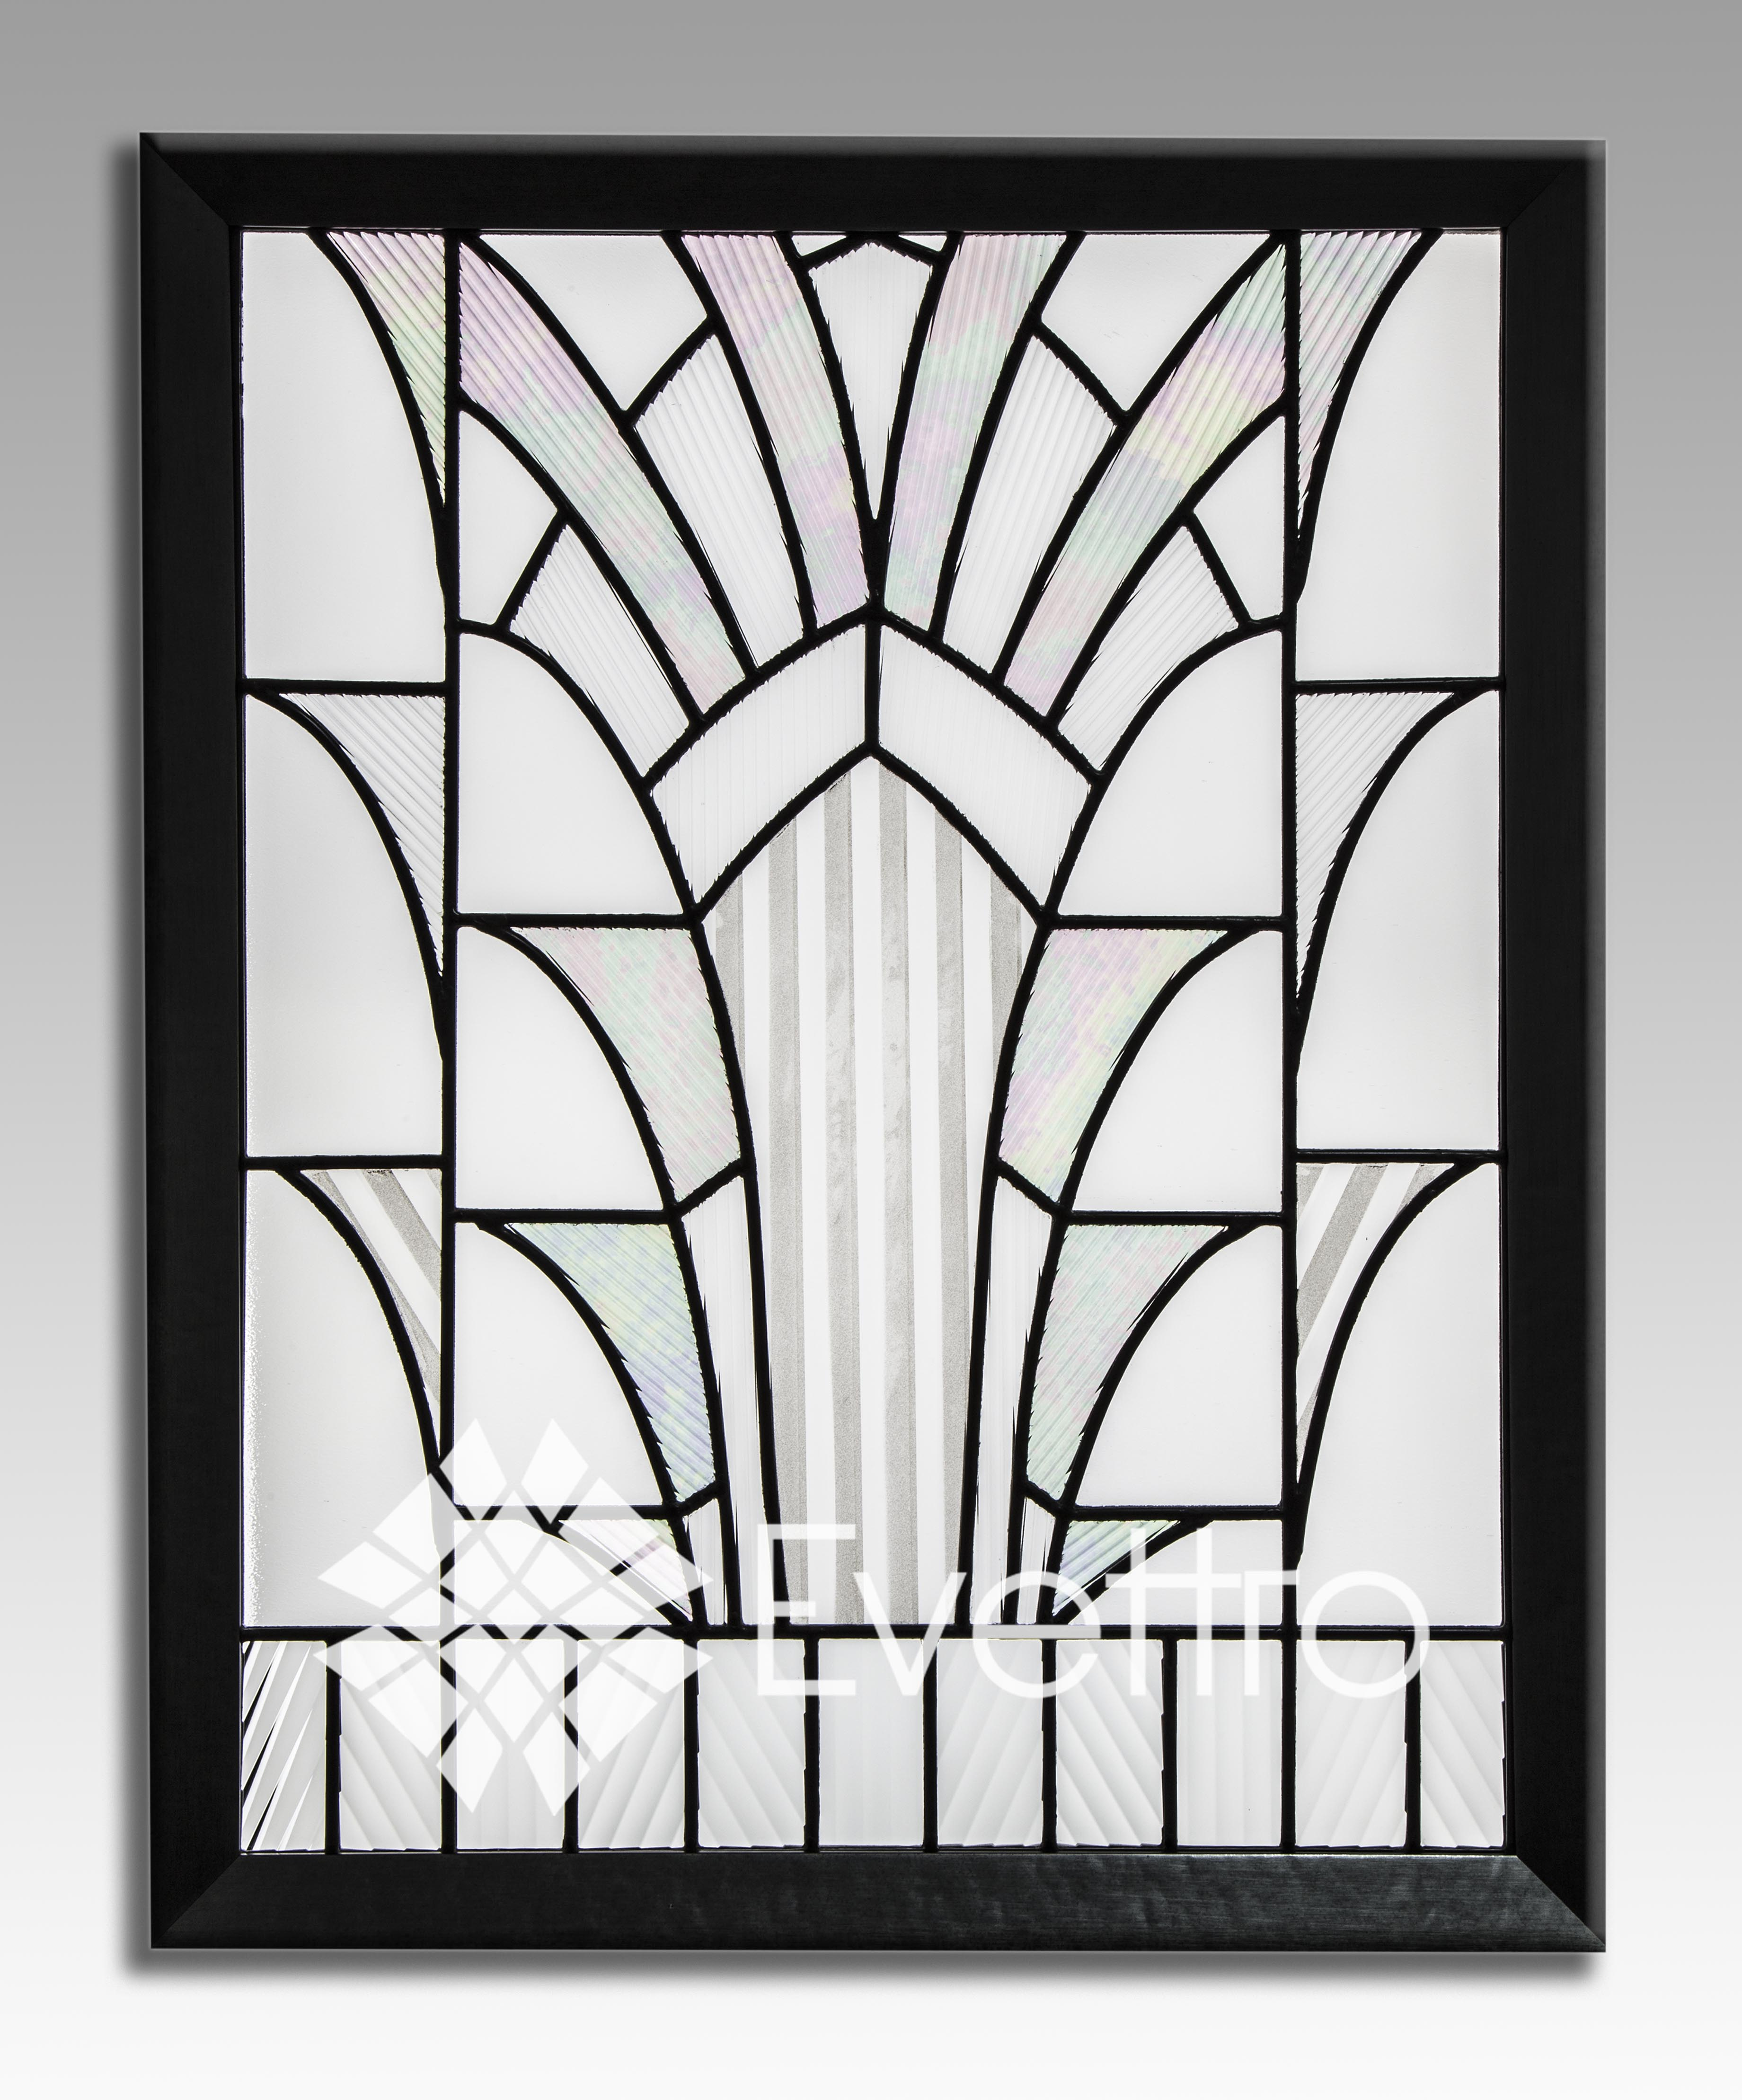 evettro art in glass art deco stained glass evettro art in glass. Black Bedroom Furniture Sets. Home Design Ideas